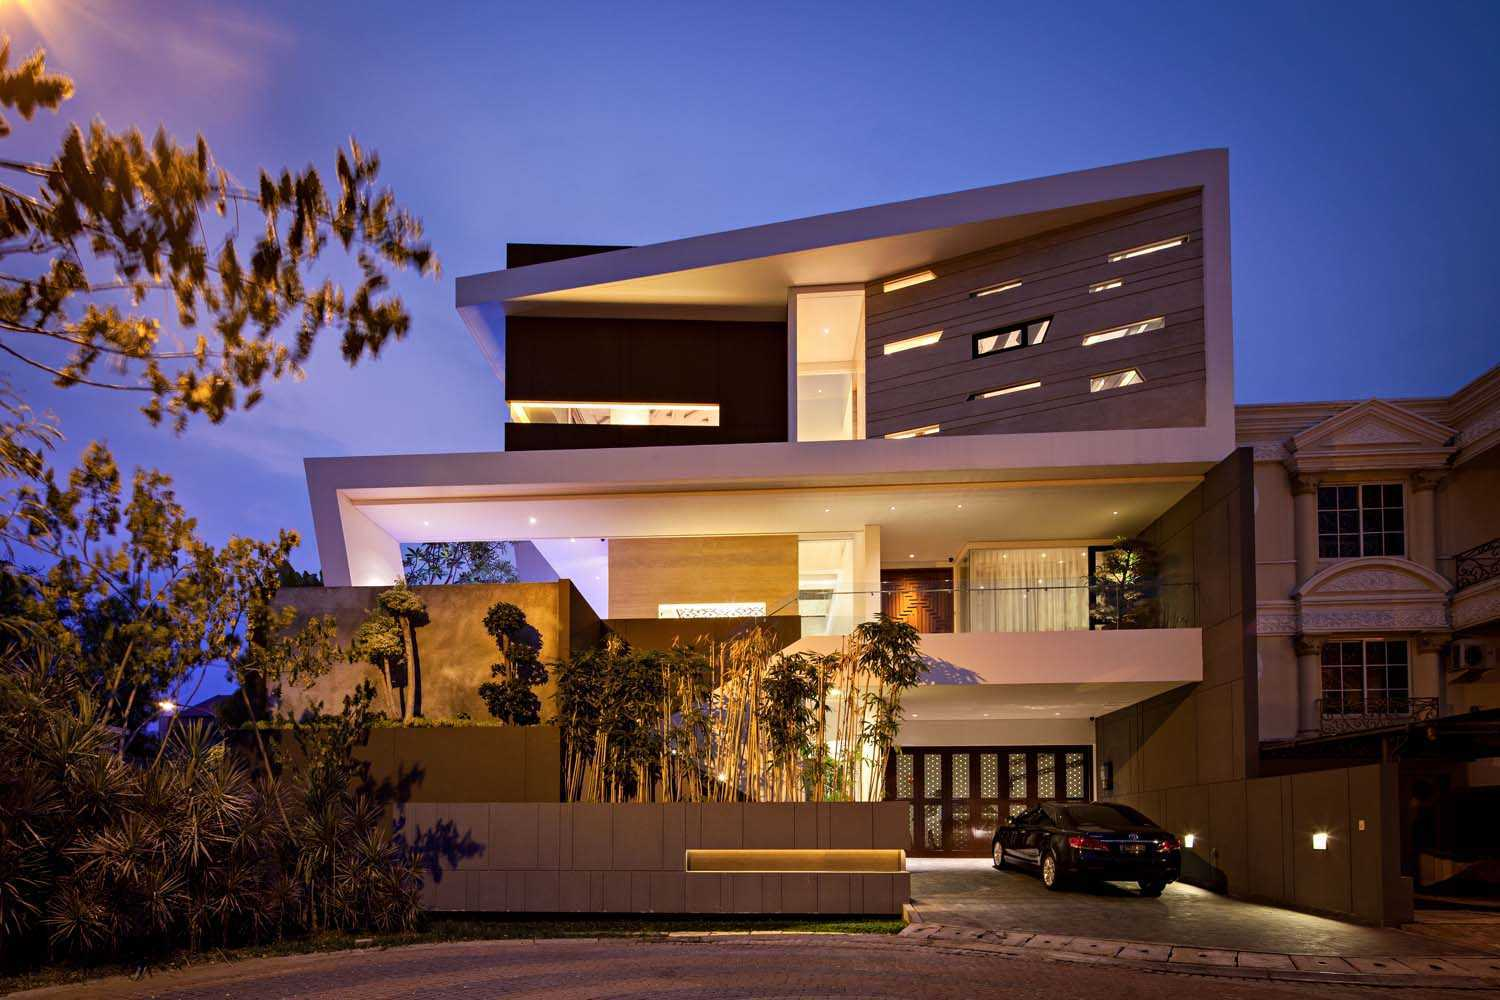 Dp+Hs Architects F+W House Jakarta, Indonesia Jakarta, Indonesia Front View Modern  8528